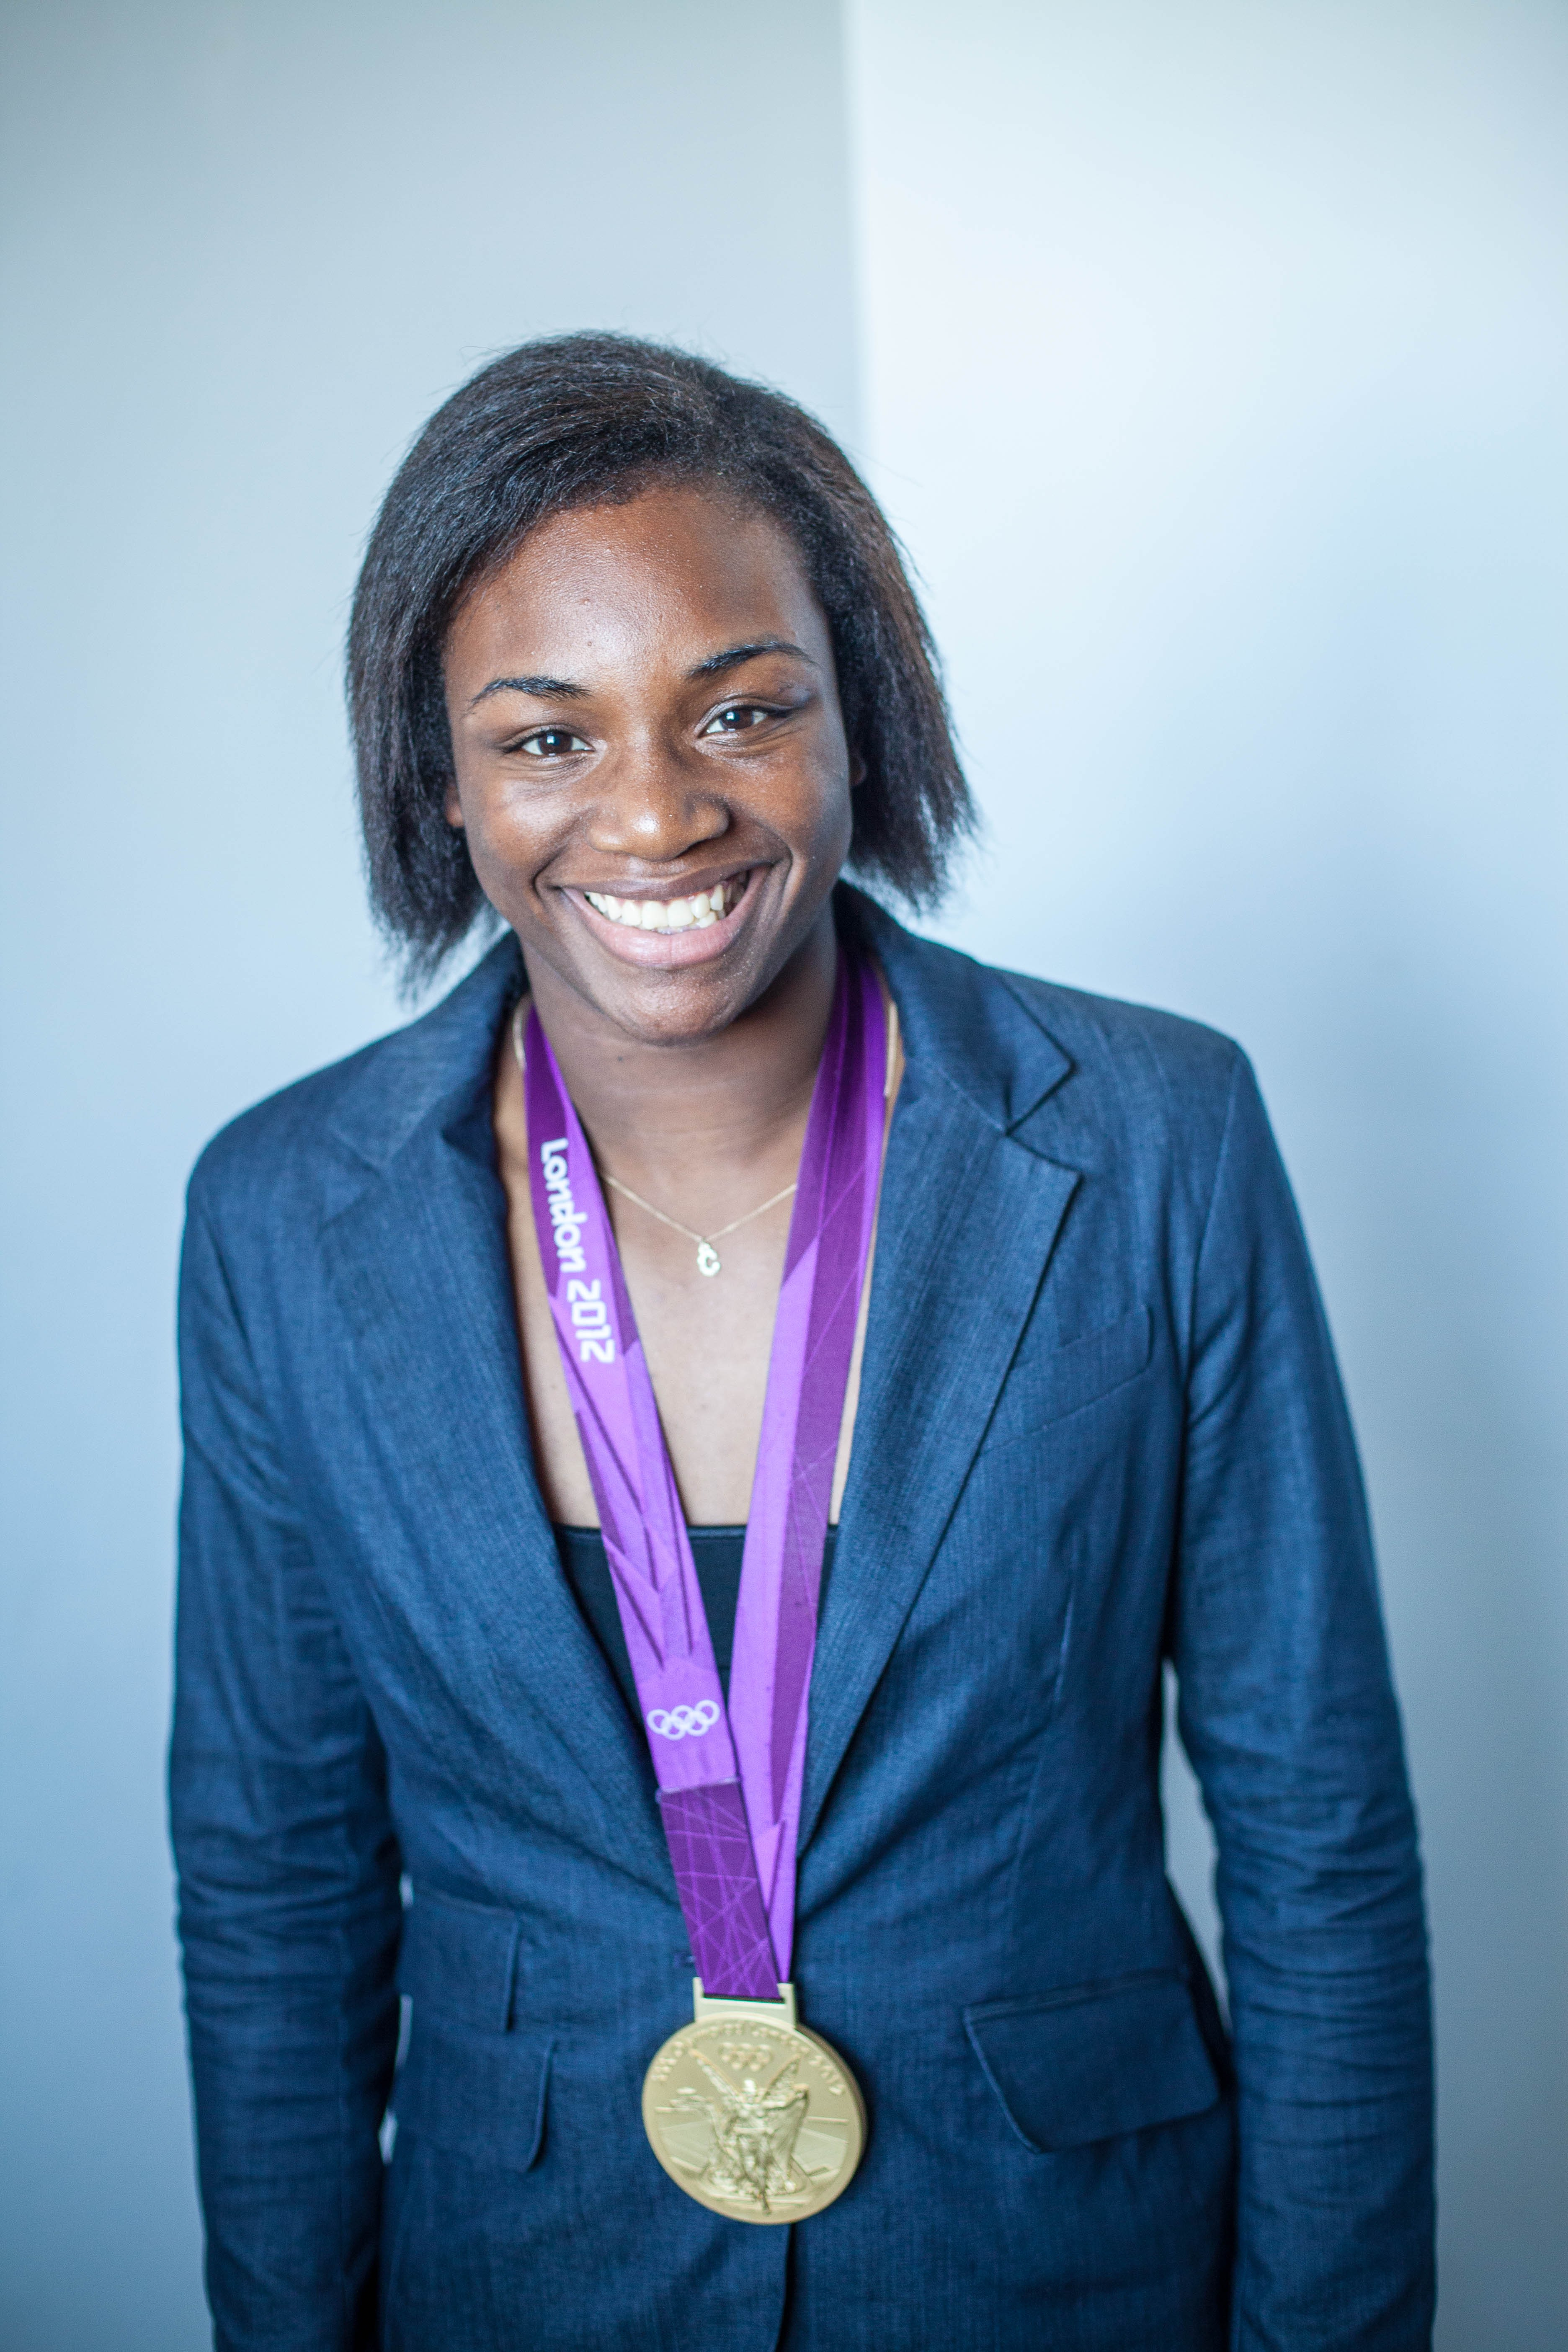 Detroit Local News >> Flint-made Olympic gold medalist, Claressa Shields, will never give up | News Hits